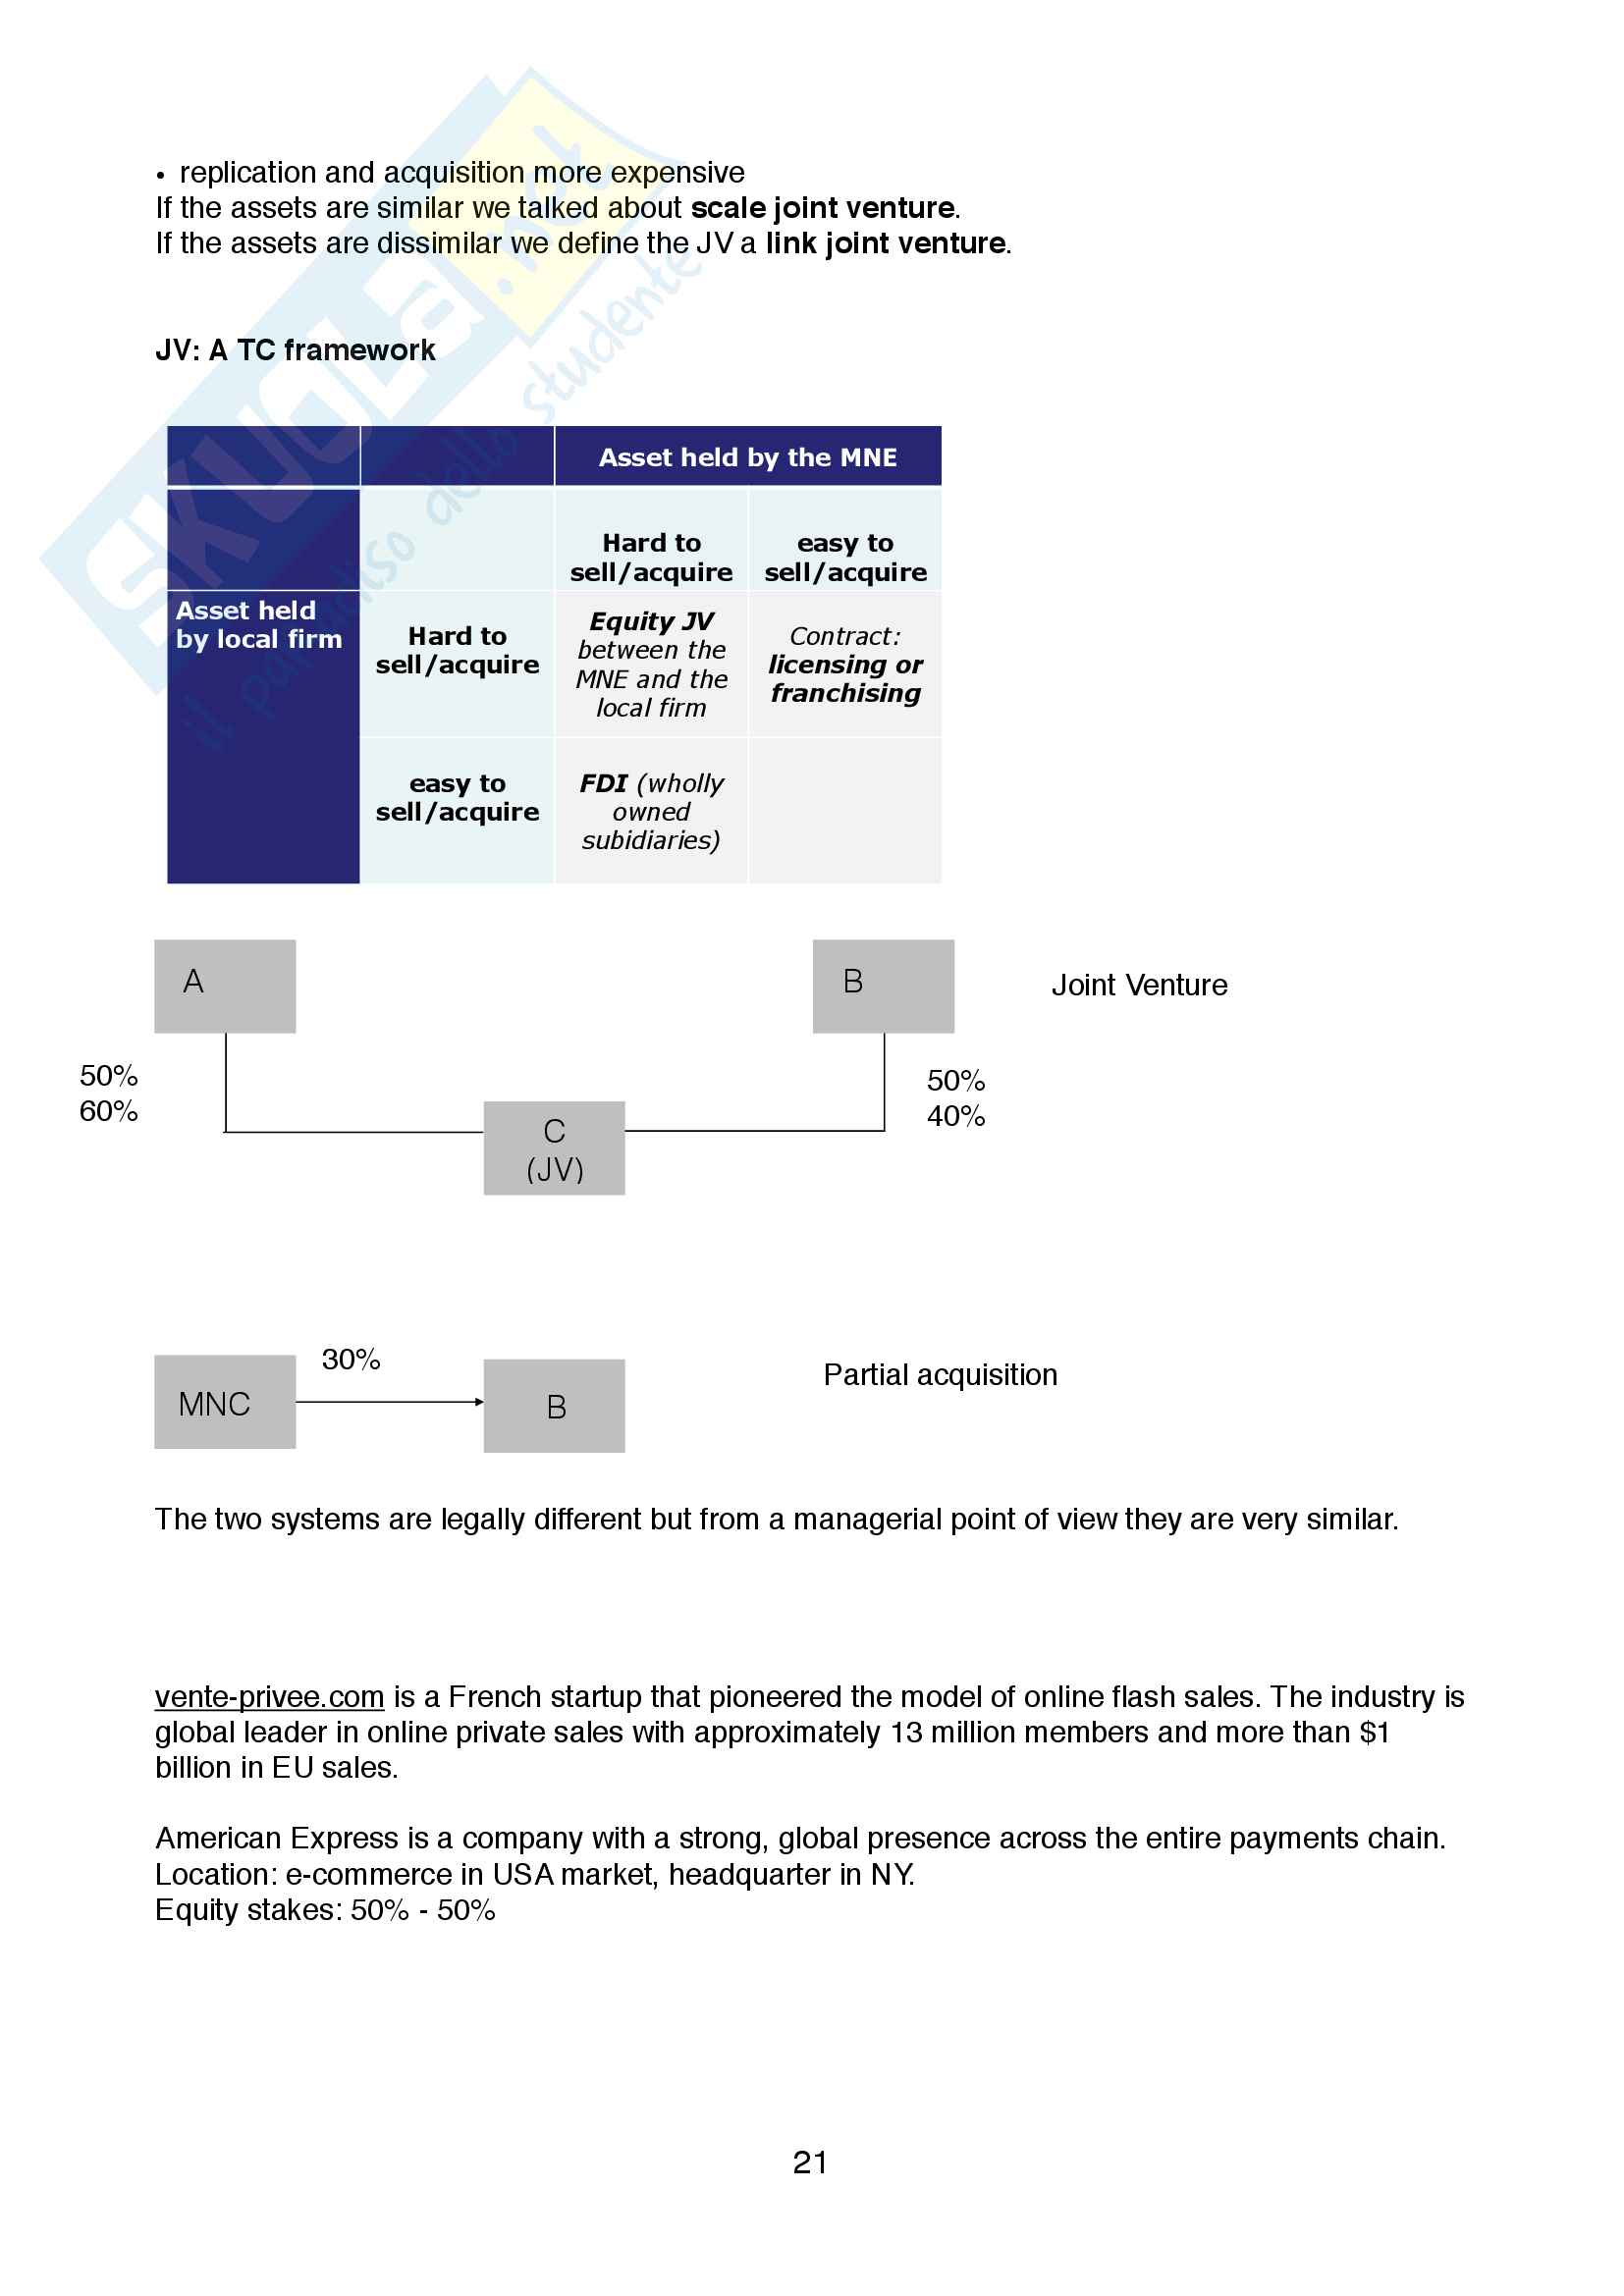 Appunti International Business & Management Pag. 21